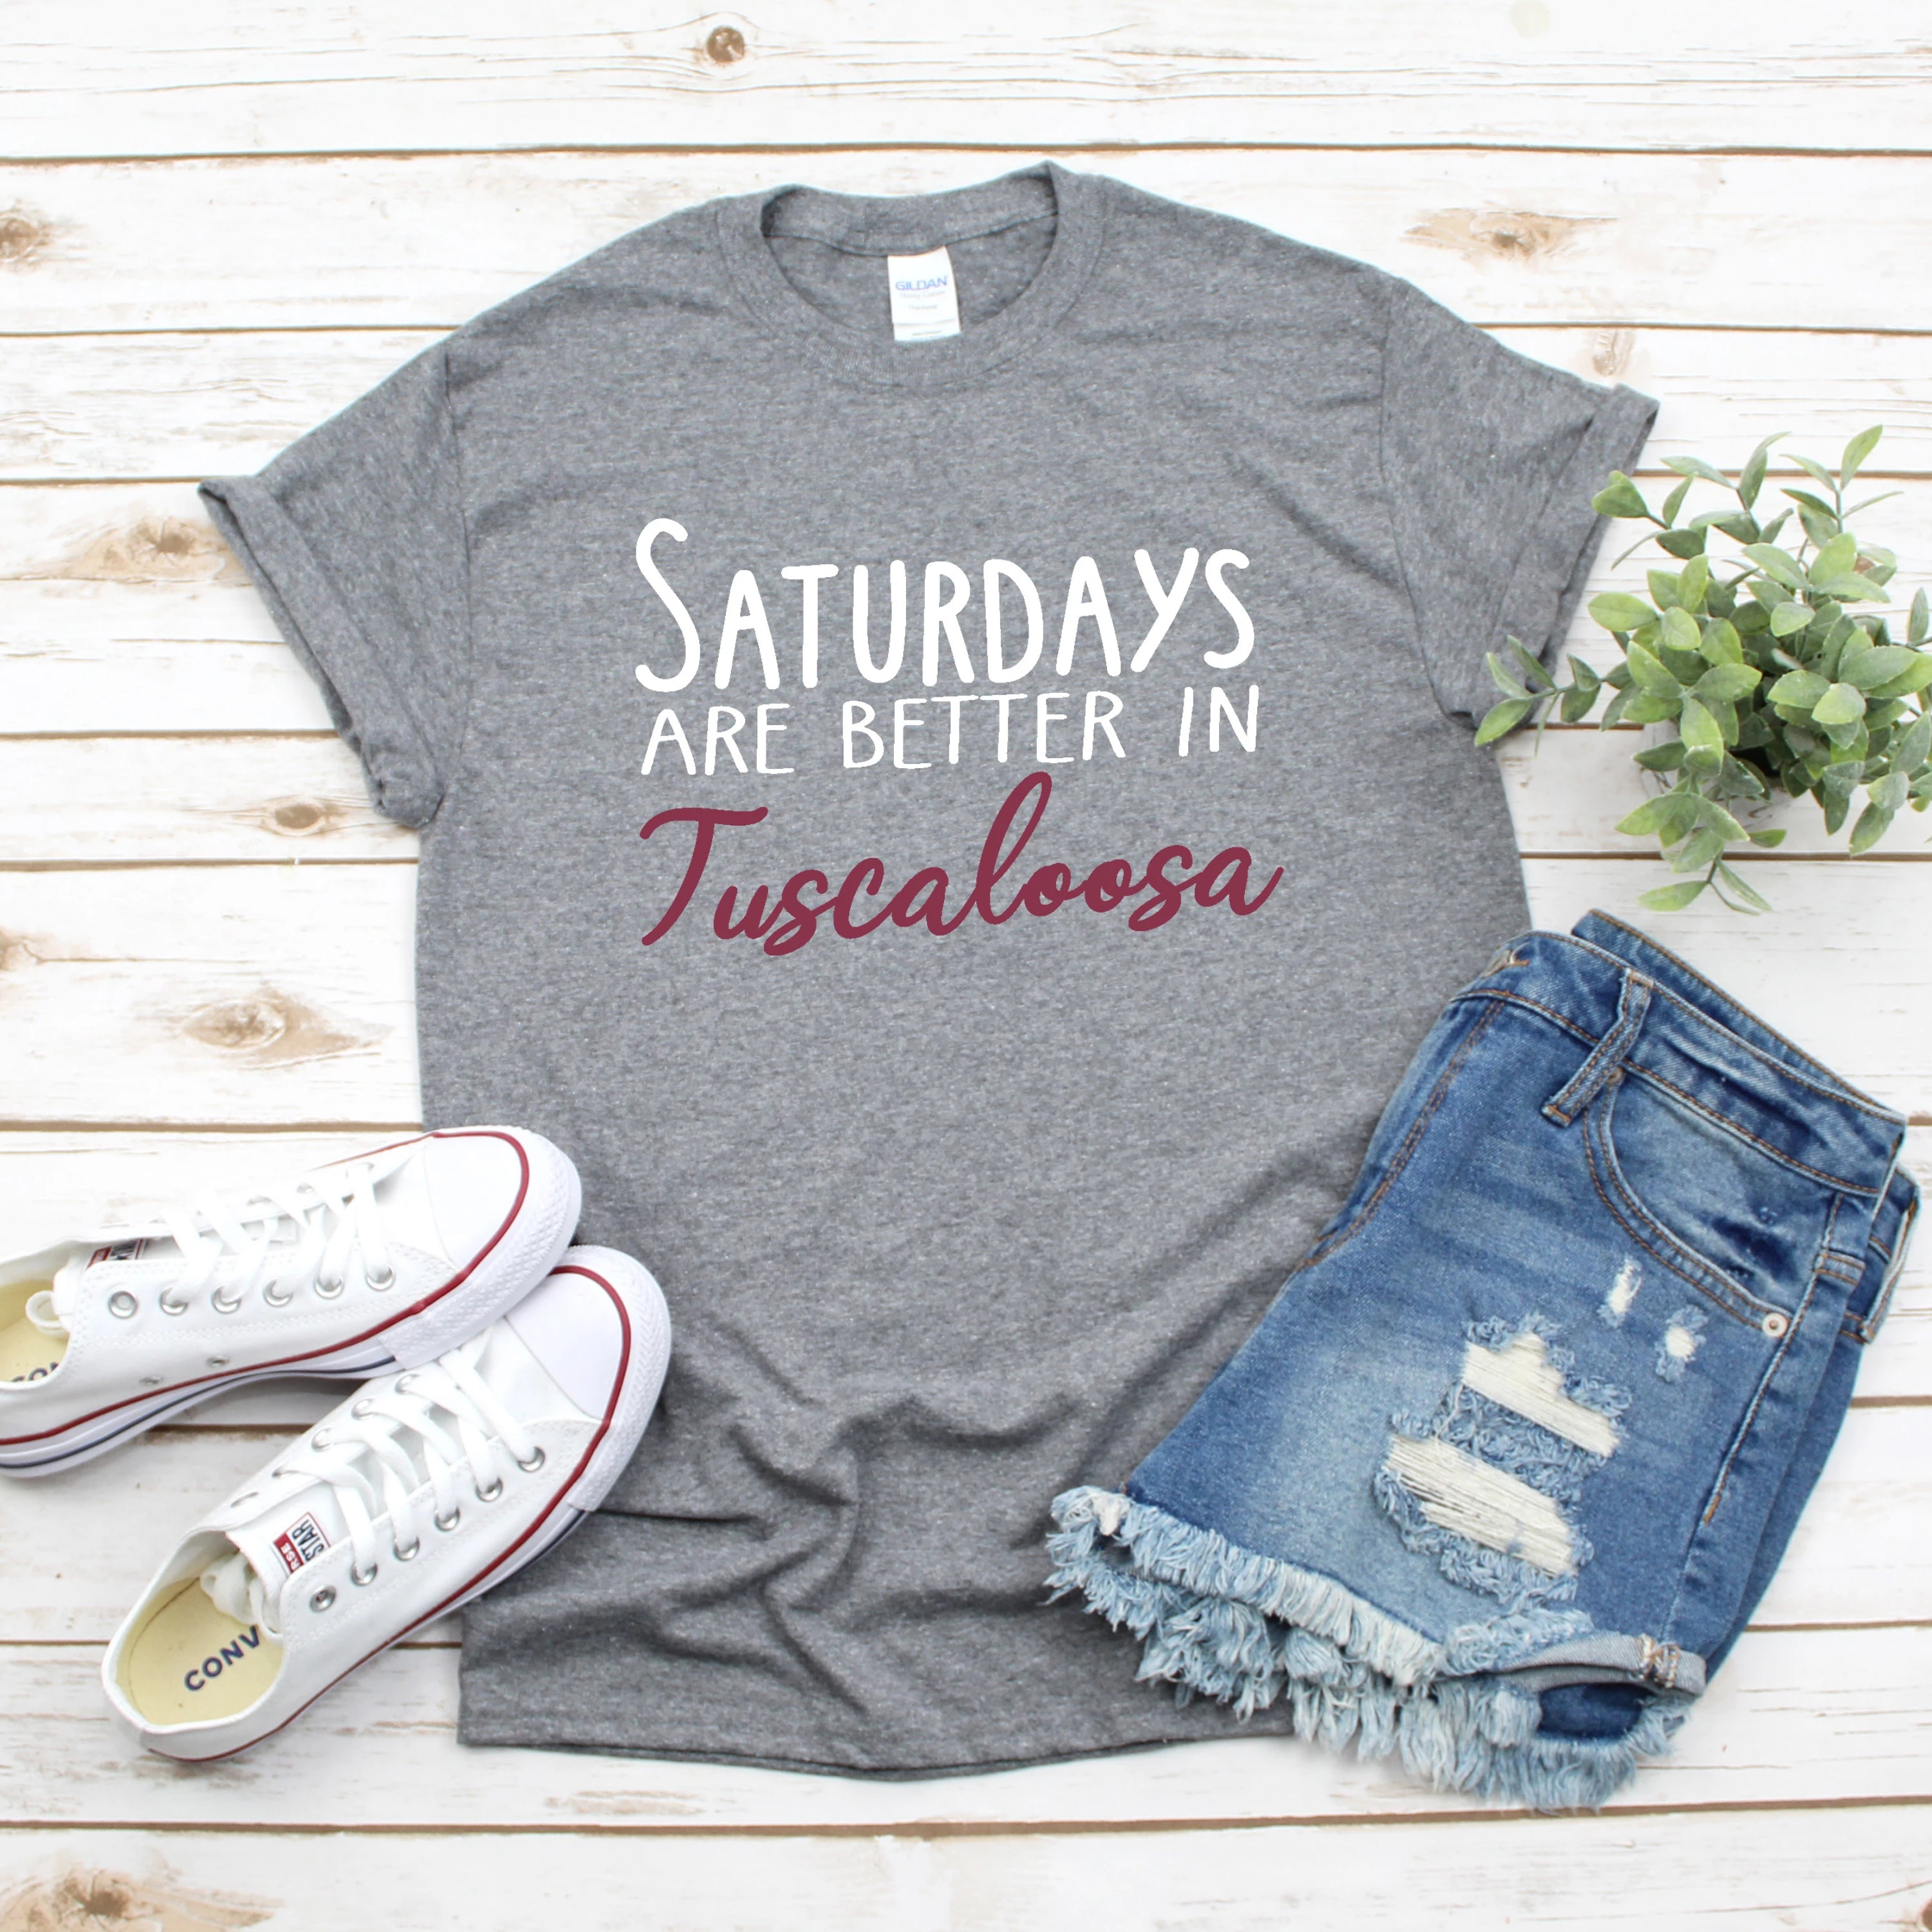 Saturdays In Tuscaloosa Gameday T-Shirt - Southern Ivy Boutique